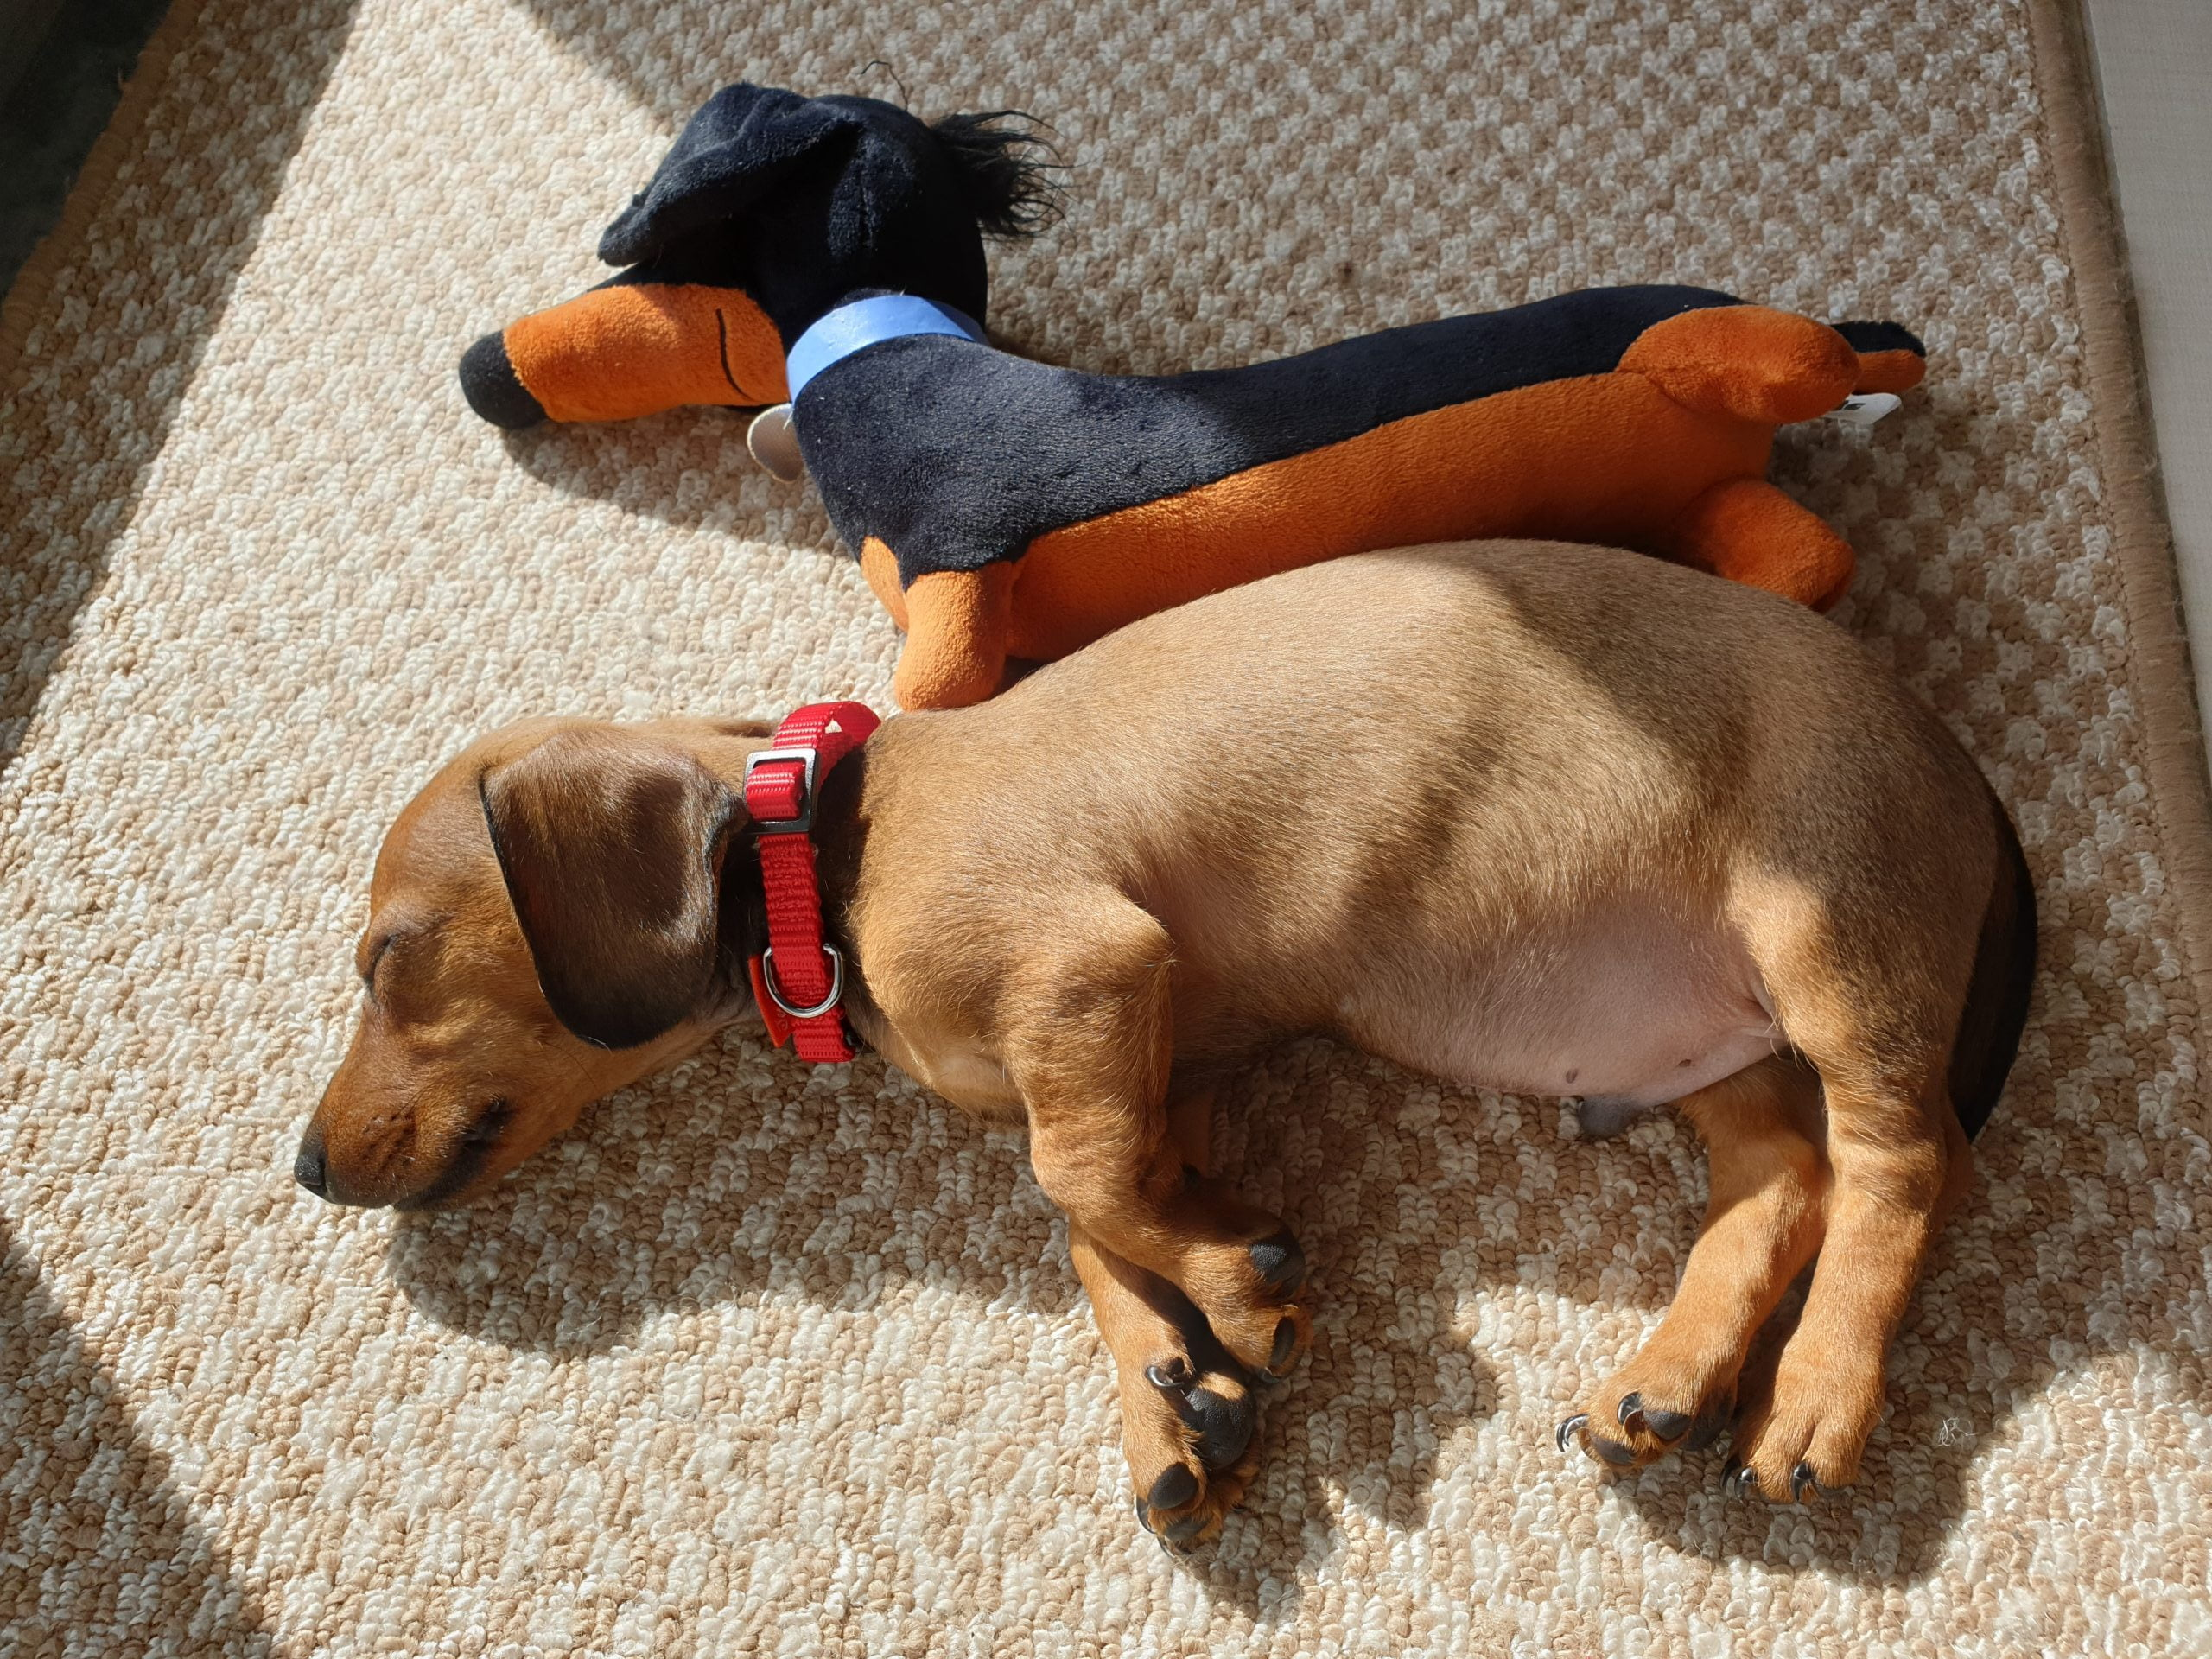 Miniature Dachshunds Appearance and Grooming